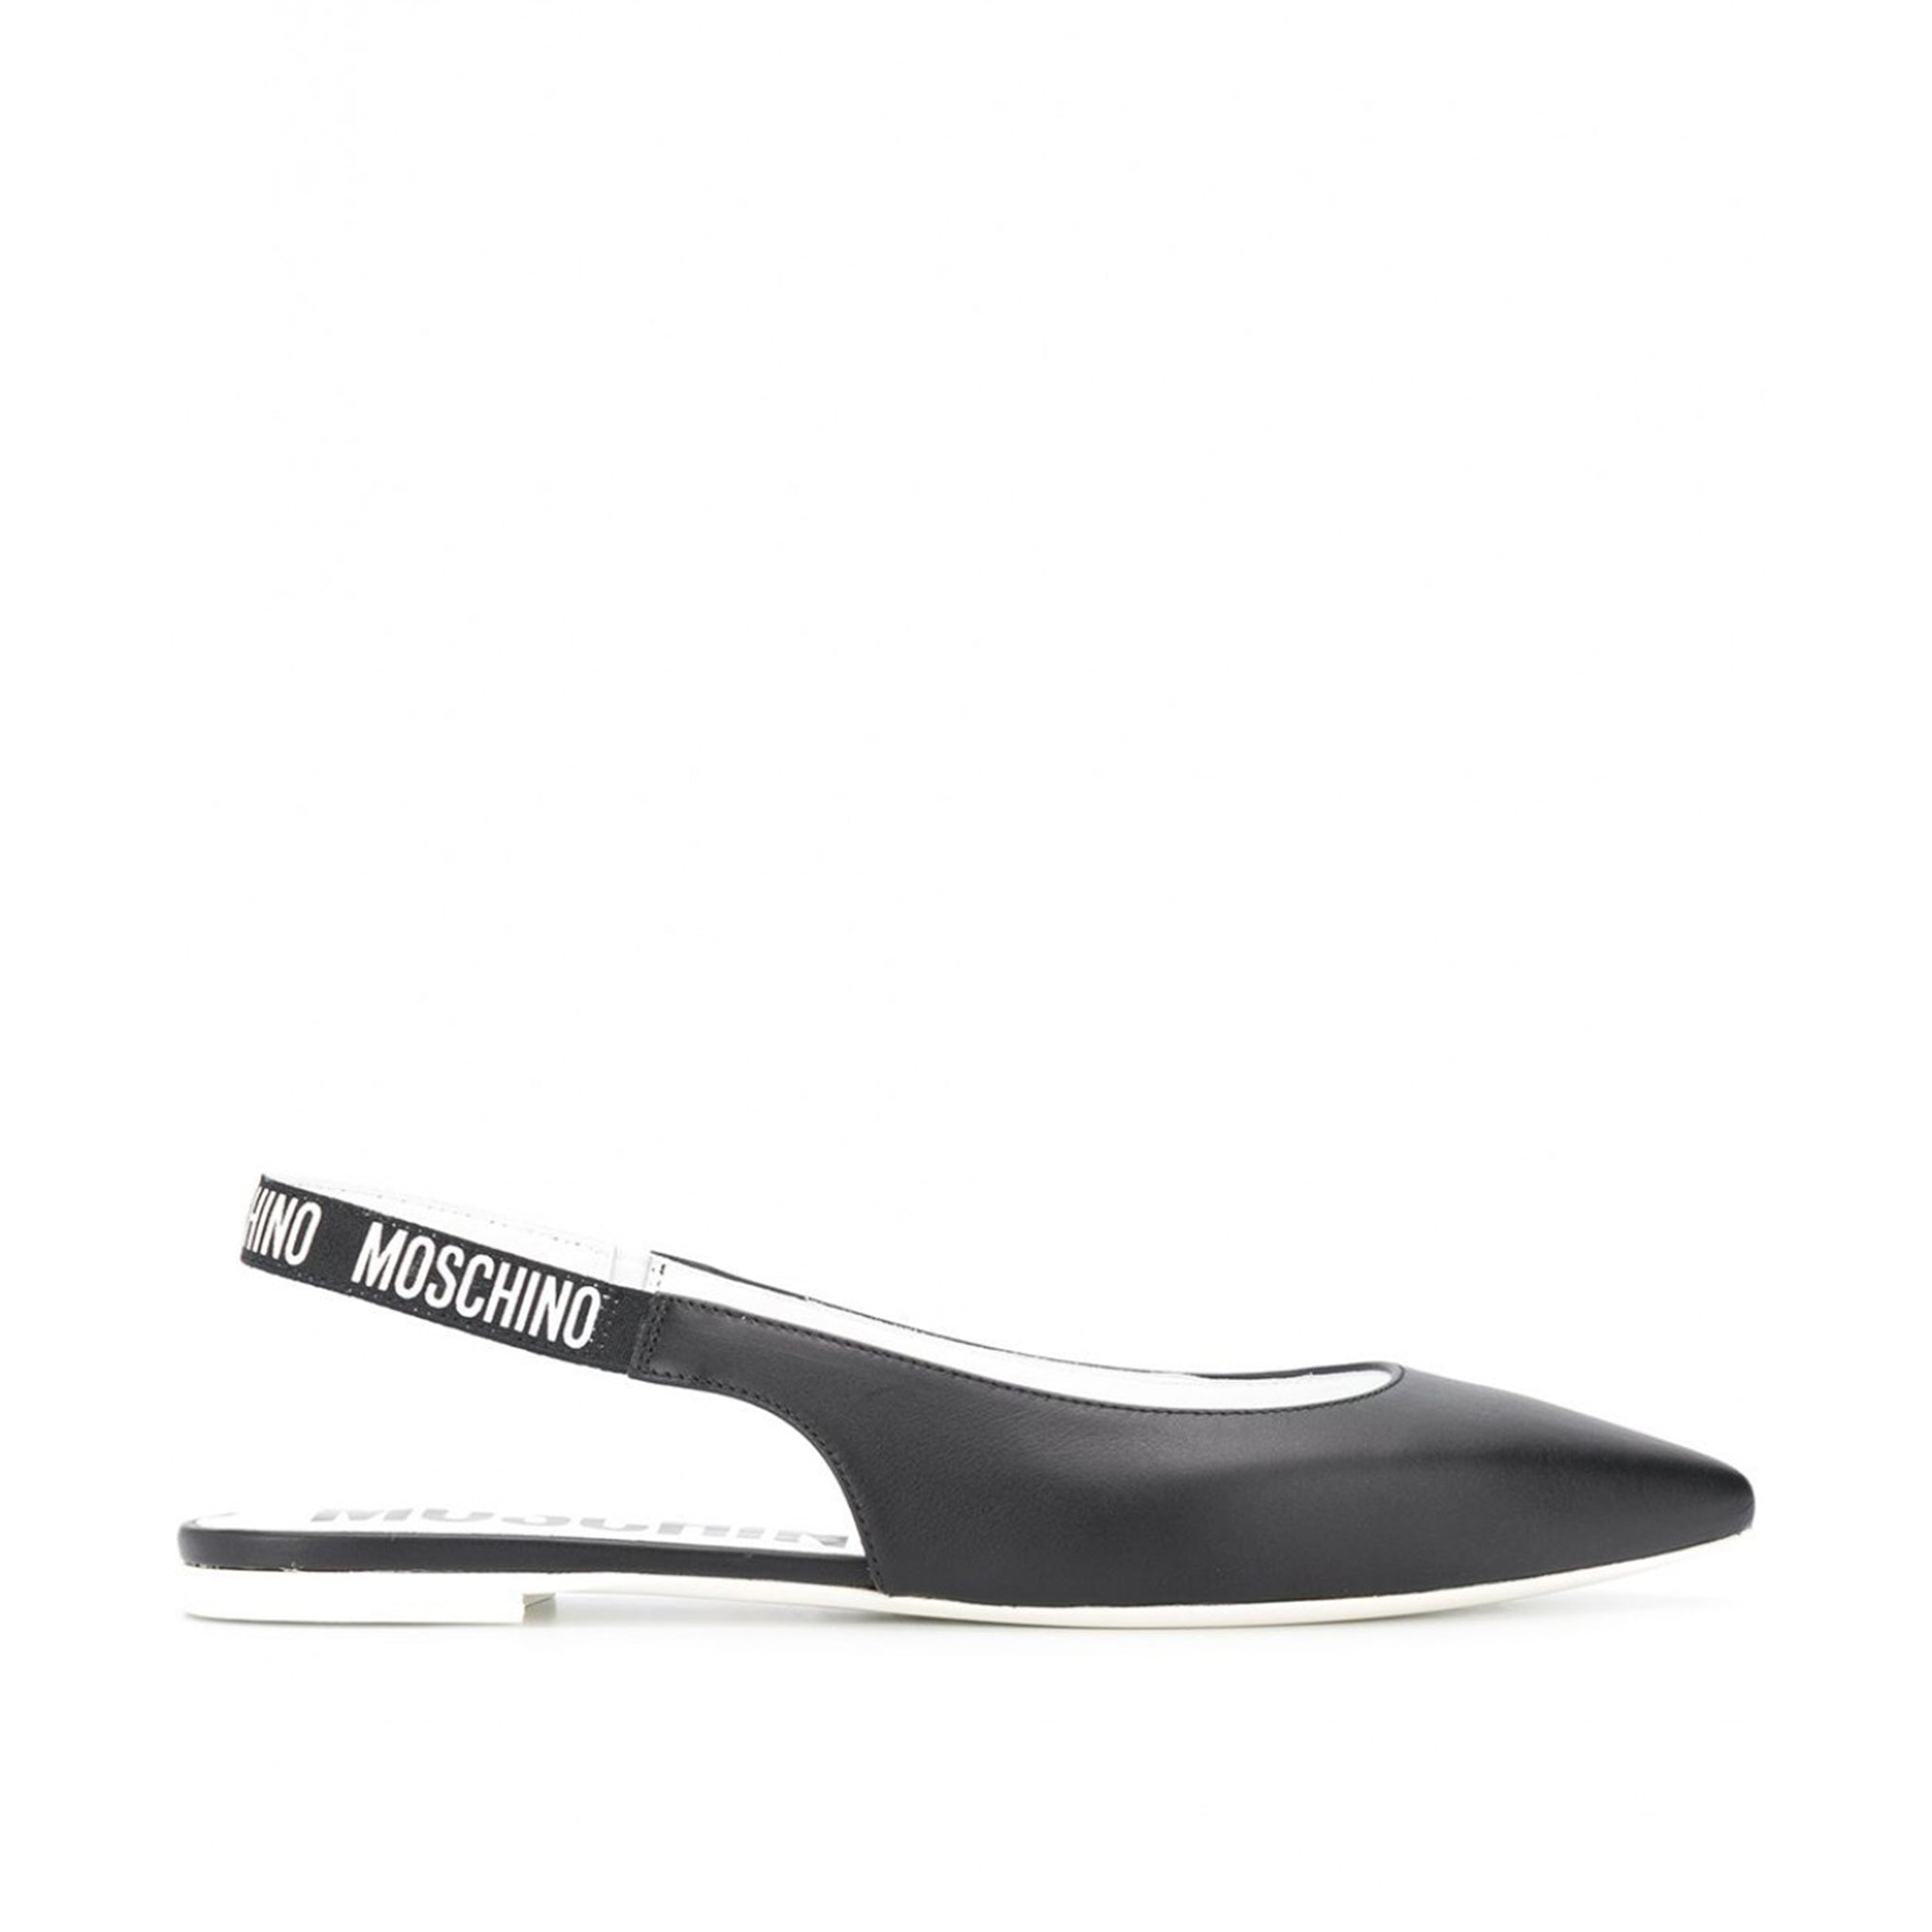 Moschino Couture Slingback Leather Flats